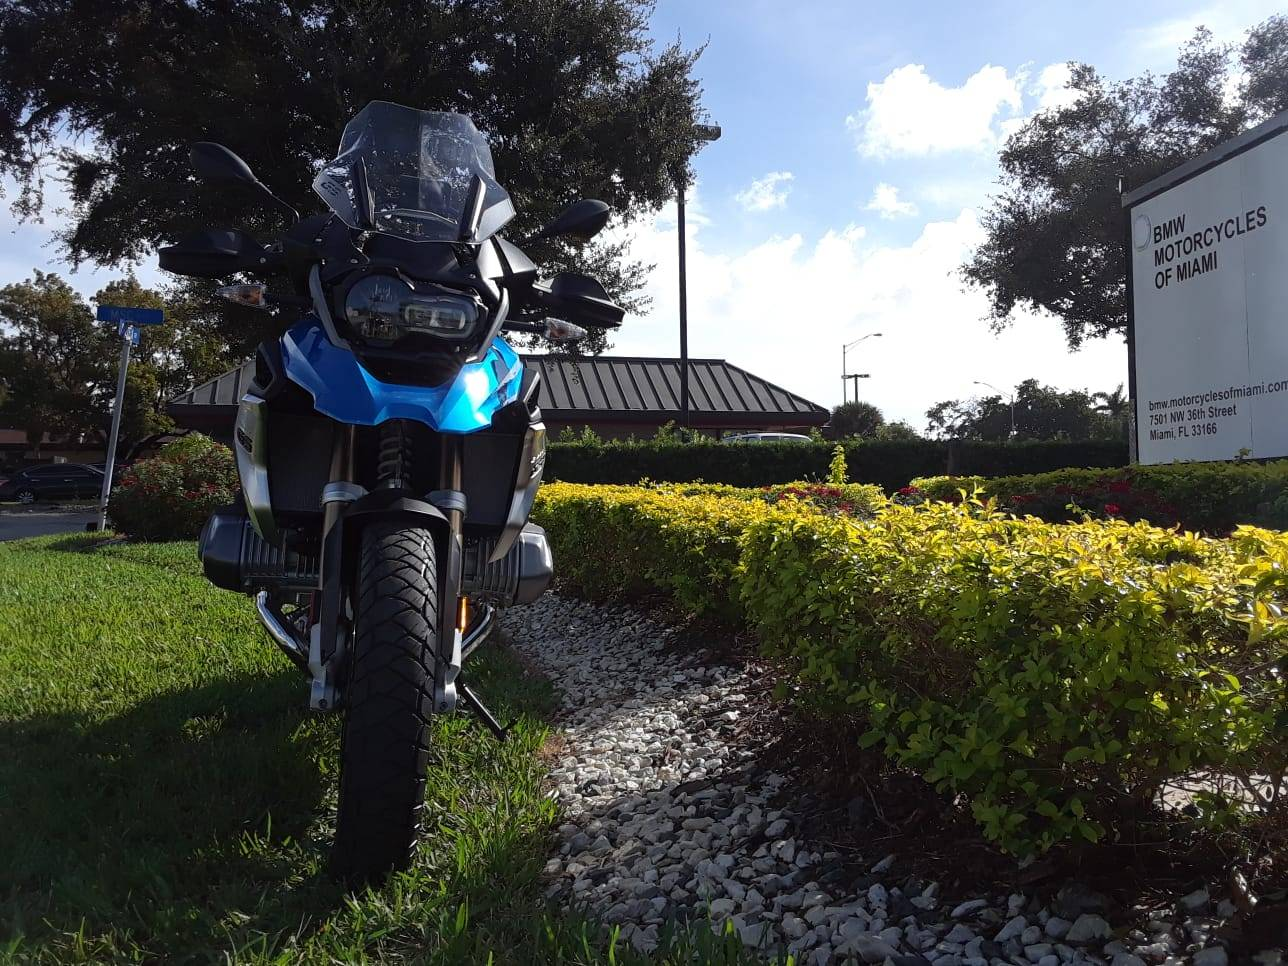 New 2019 BMW R 1250 GS for sale, New BMW R 1250GS, BMW R1250GS for sale, 1250GS, R1250GS, BMW Motorcycles of Miami, Motorcycles of Miami. Motorcycles Miami - Photo 15